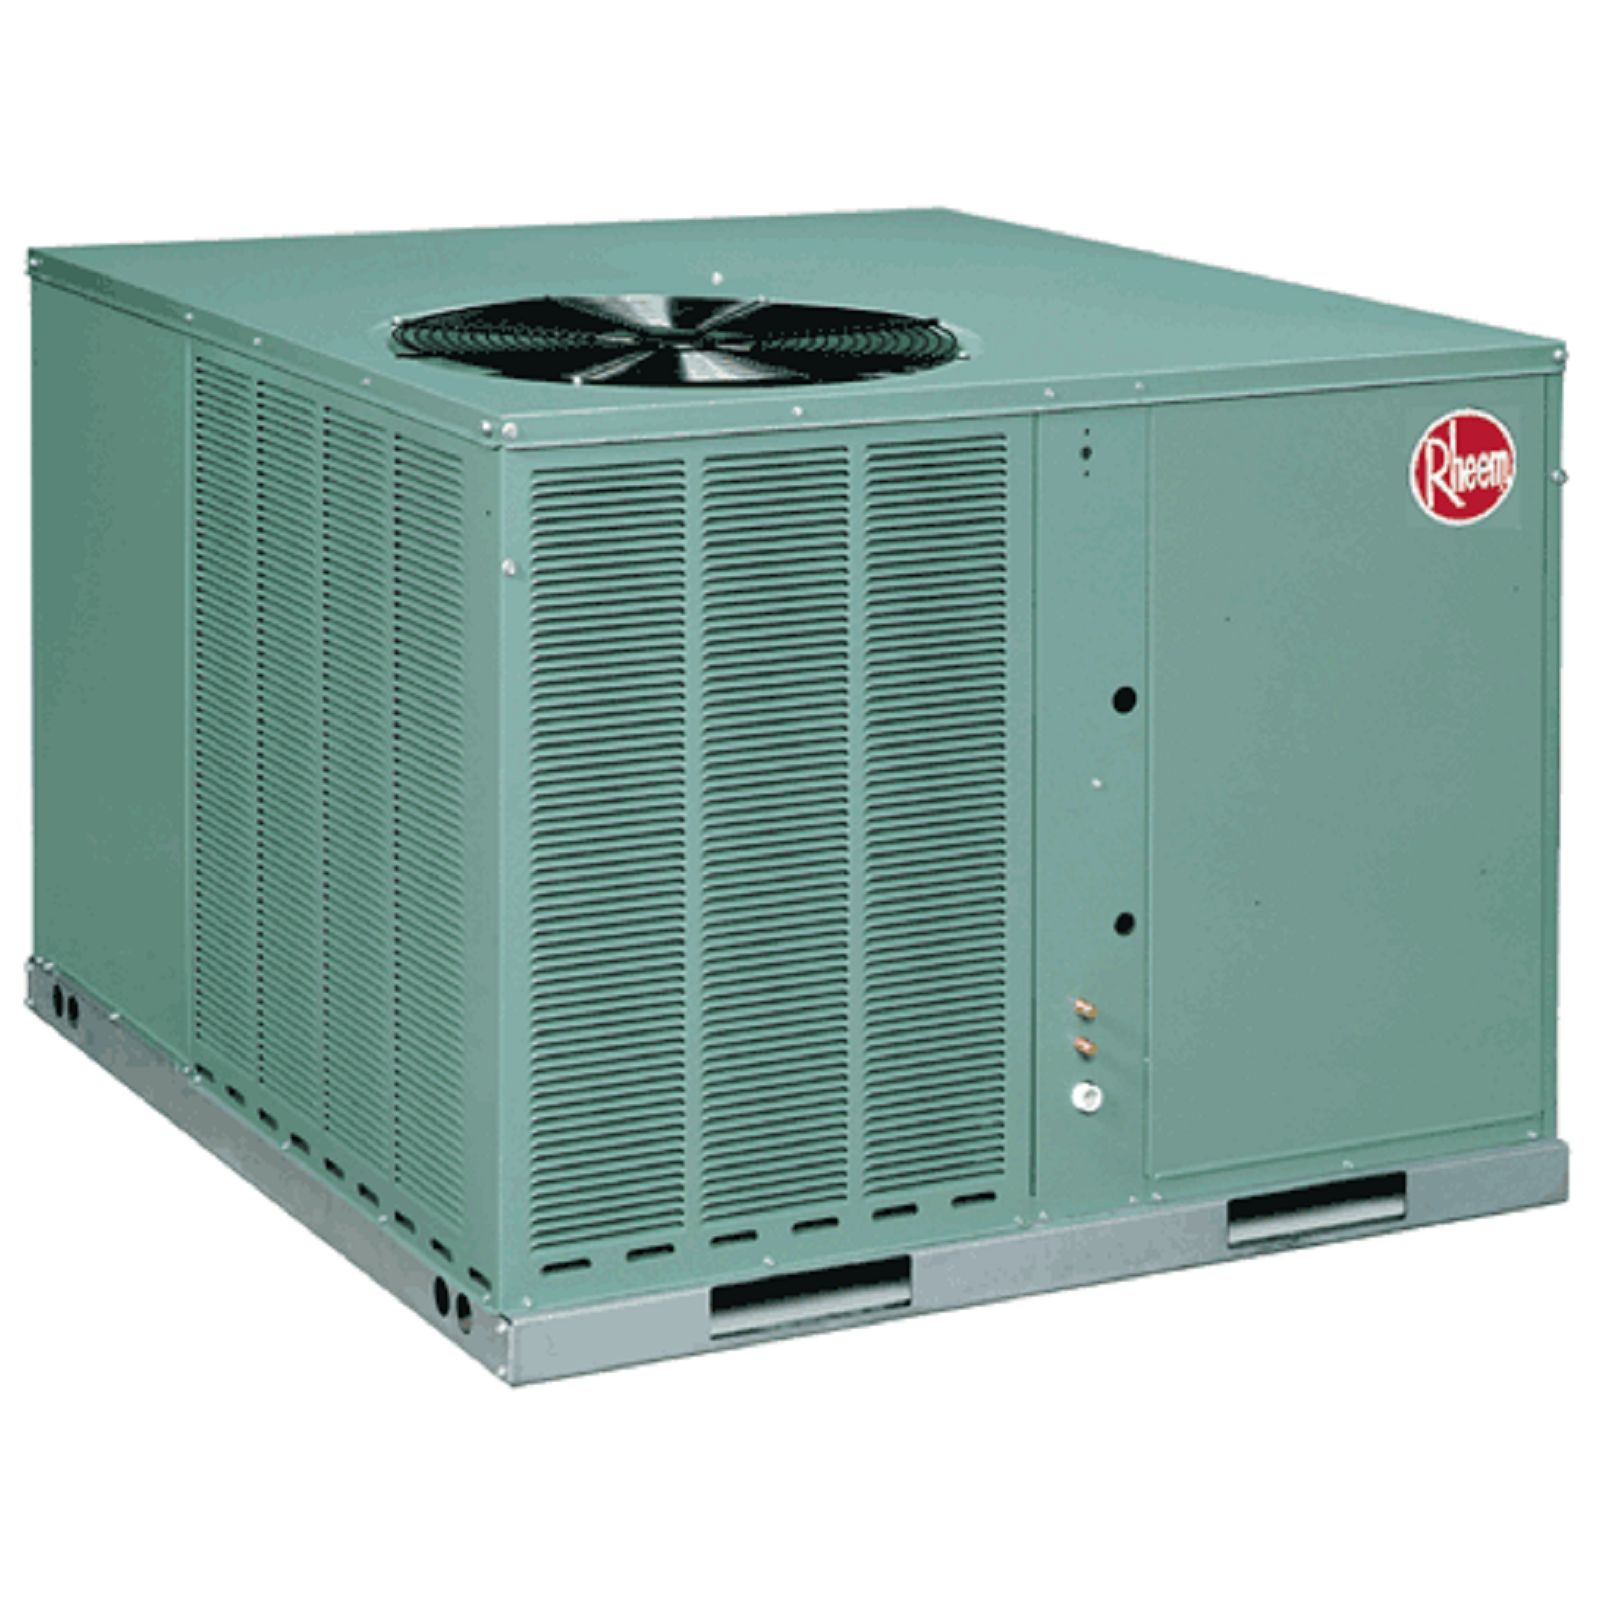 Rheem RQNA-B048JK000 - 4 Ton, 13 SEER, R22, Packaged Heat Pump 208-230 V, 1 Ph, 60 Hz